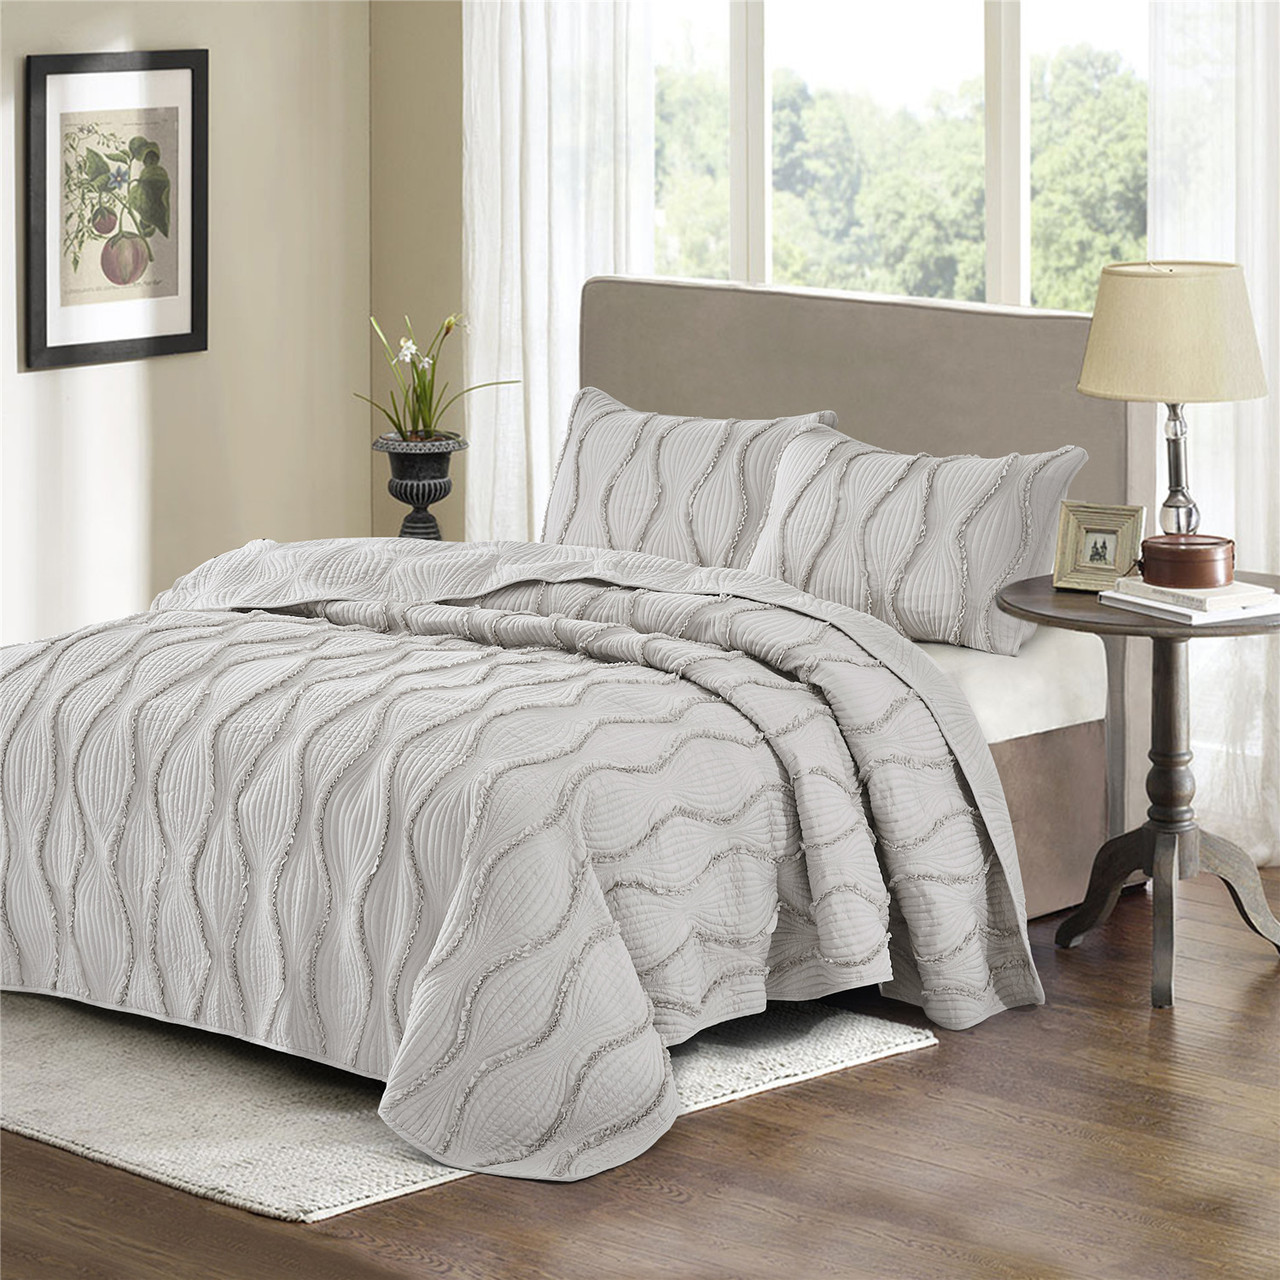 Hig 3 Piece Embroidered Quilt Set Bed In A Bag